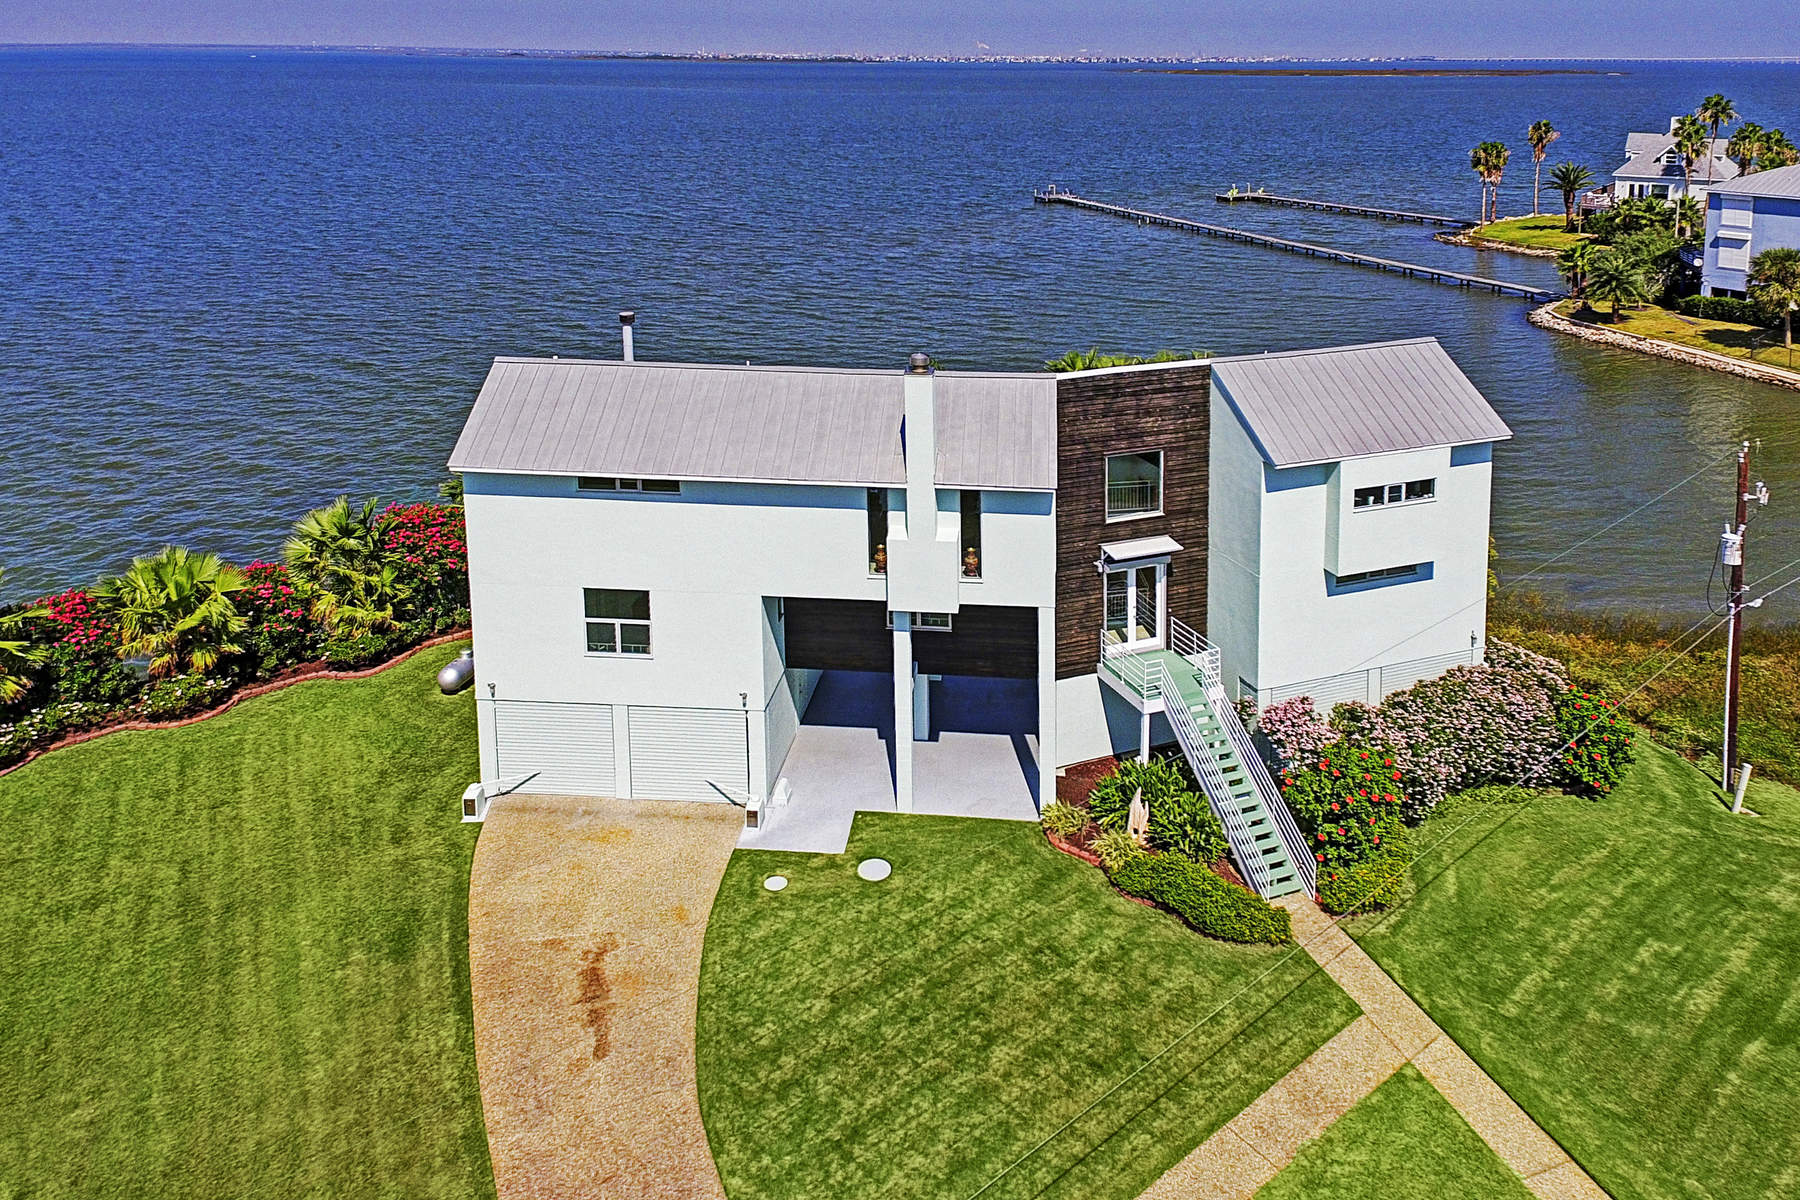 Single Family Home for Sale at 12000 Sportsman Road 12000 Sportsman Road Galveston, Texas 77554 United States